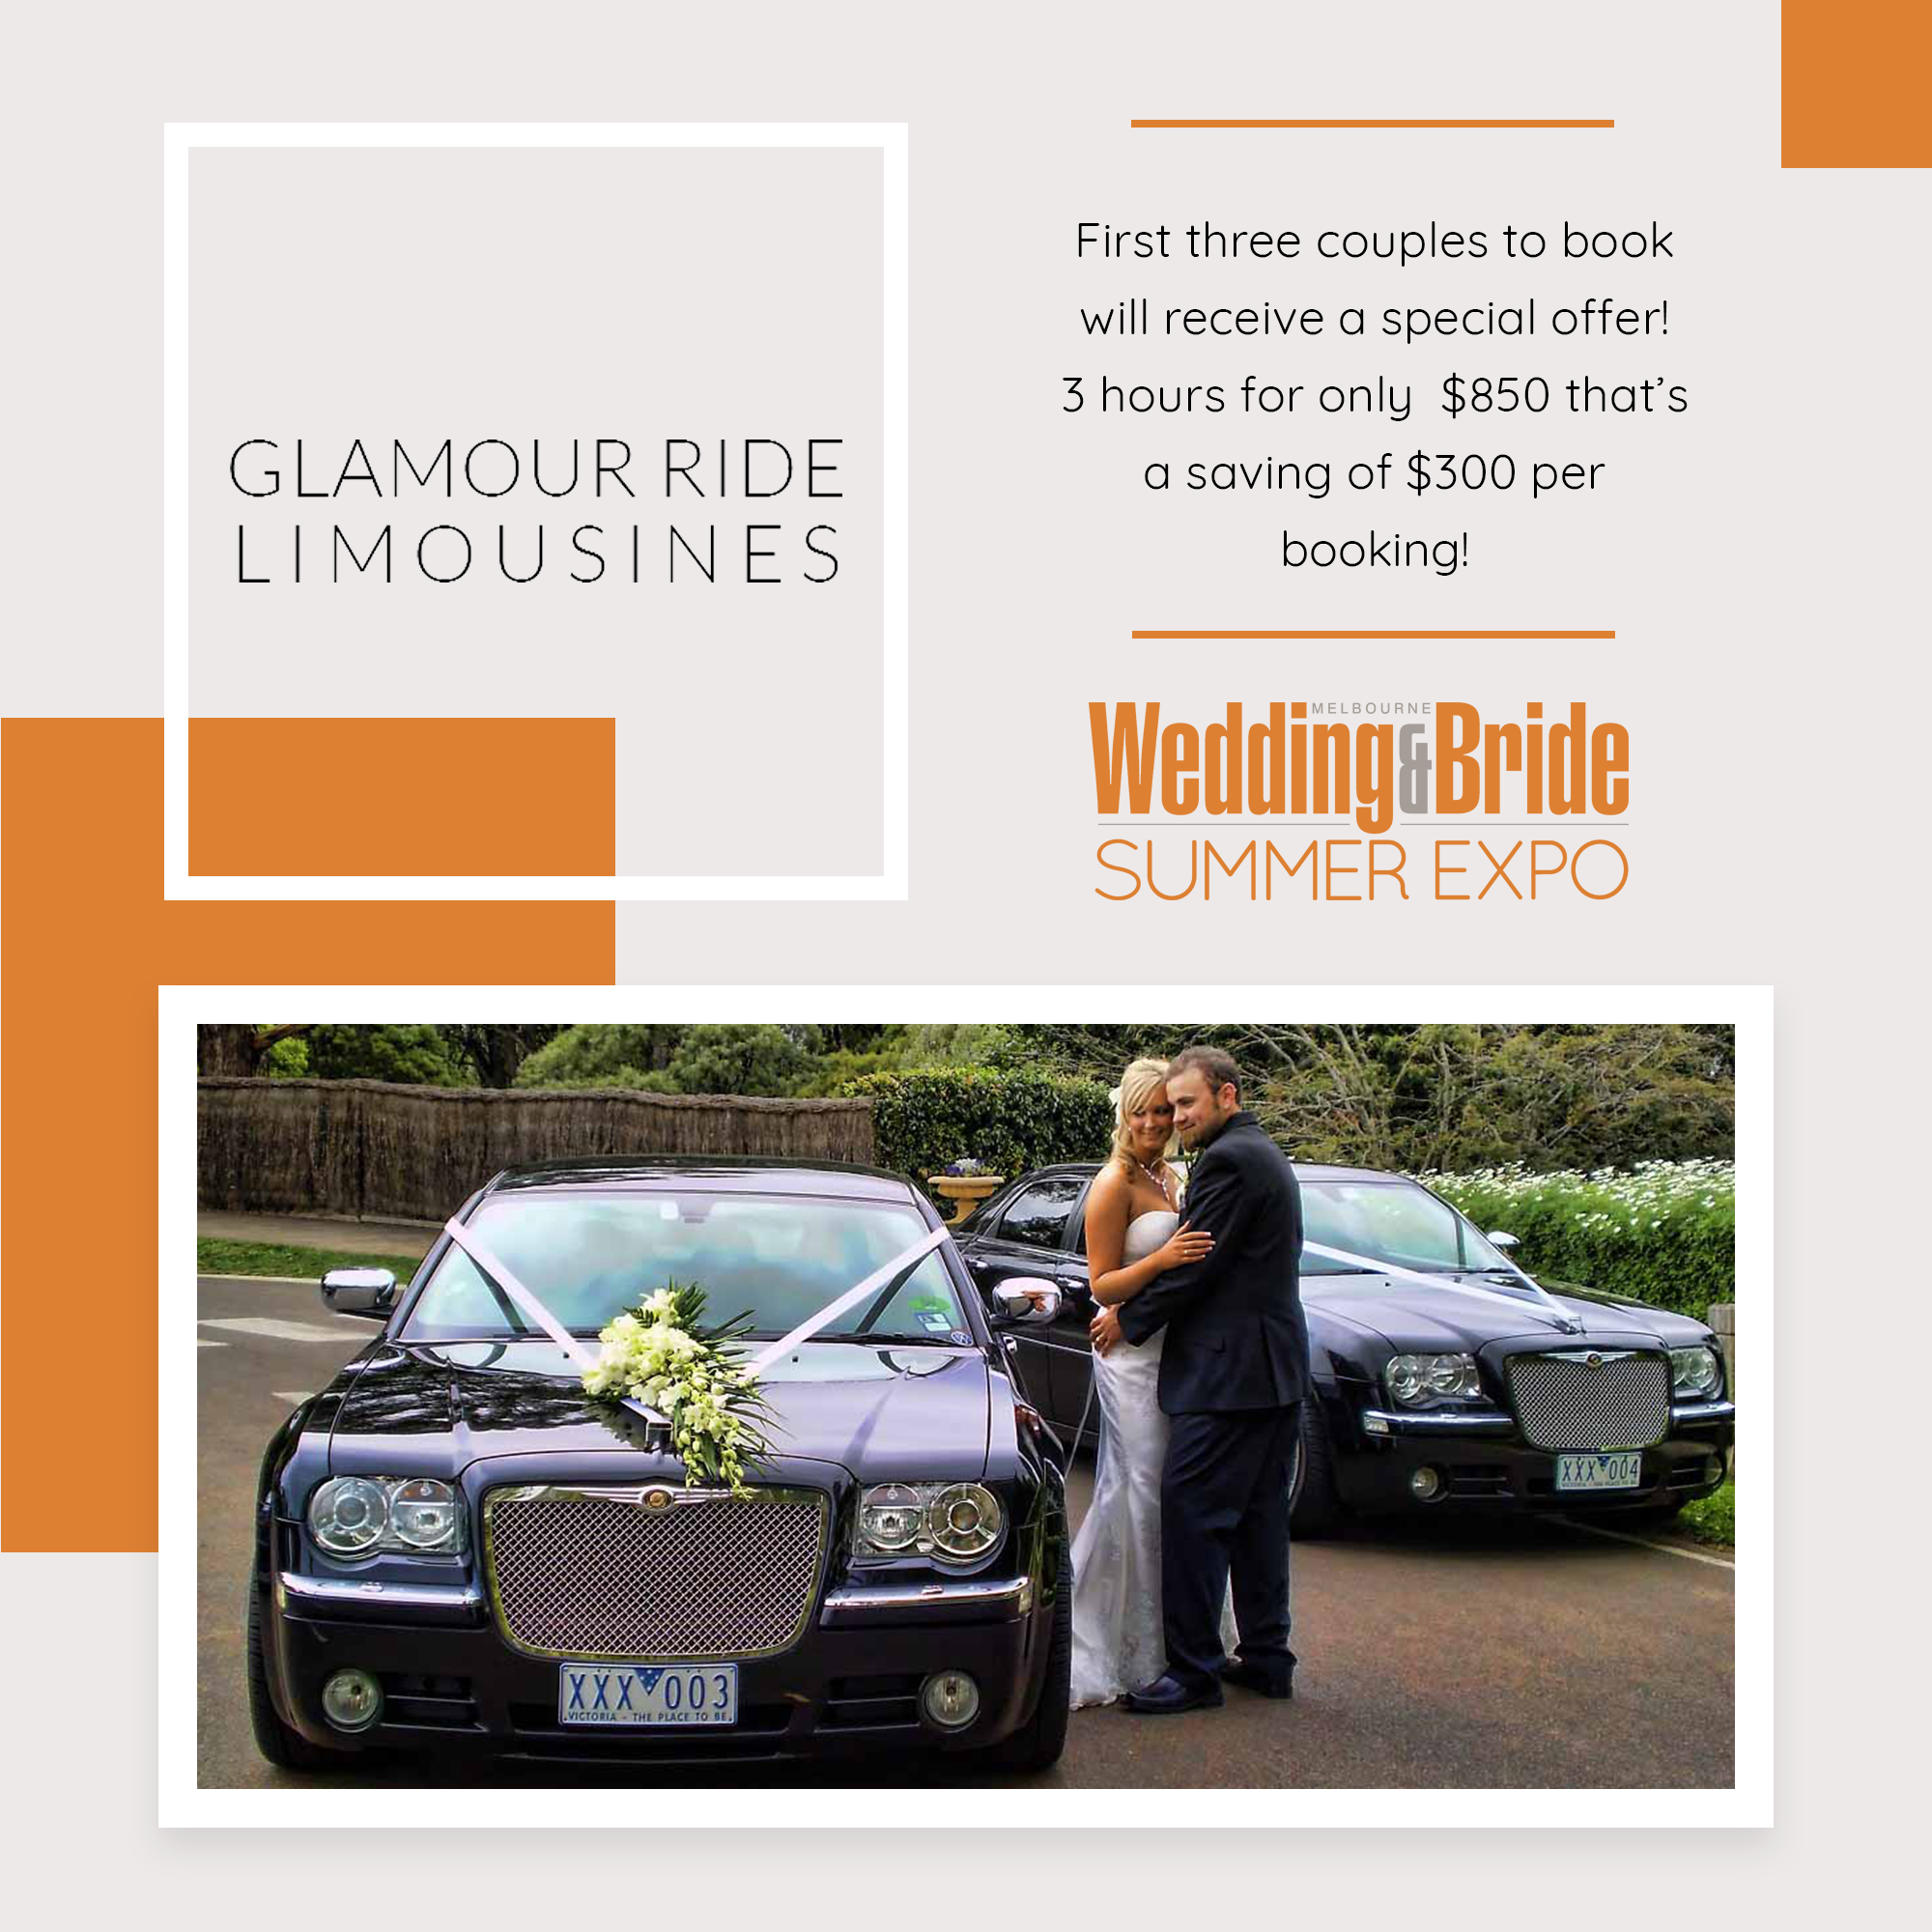 Perth Bridal Expo Competition Glamour Ride Limousines